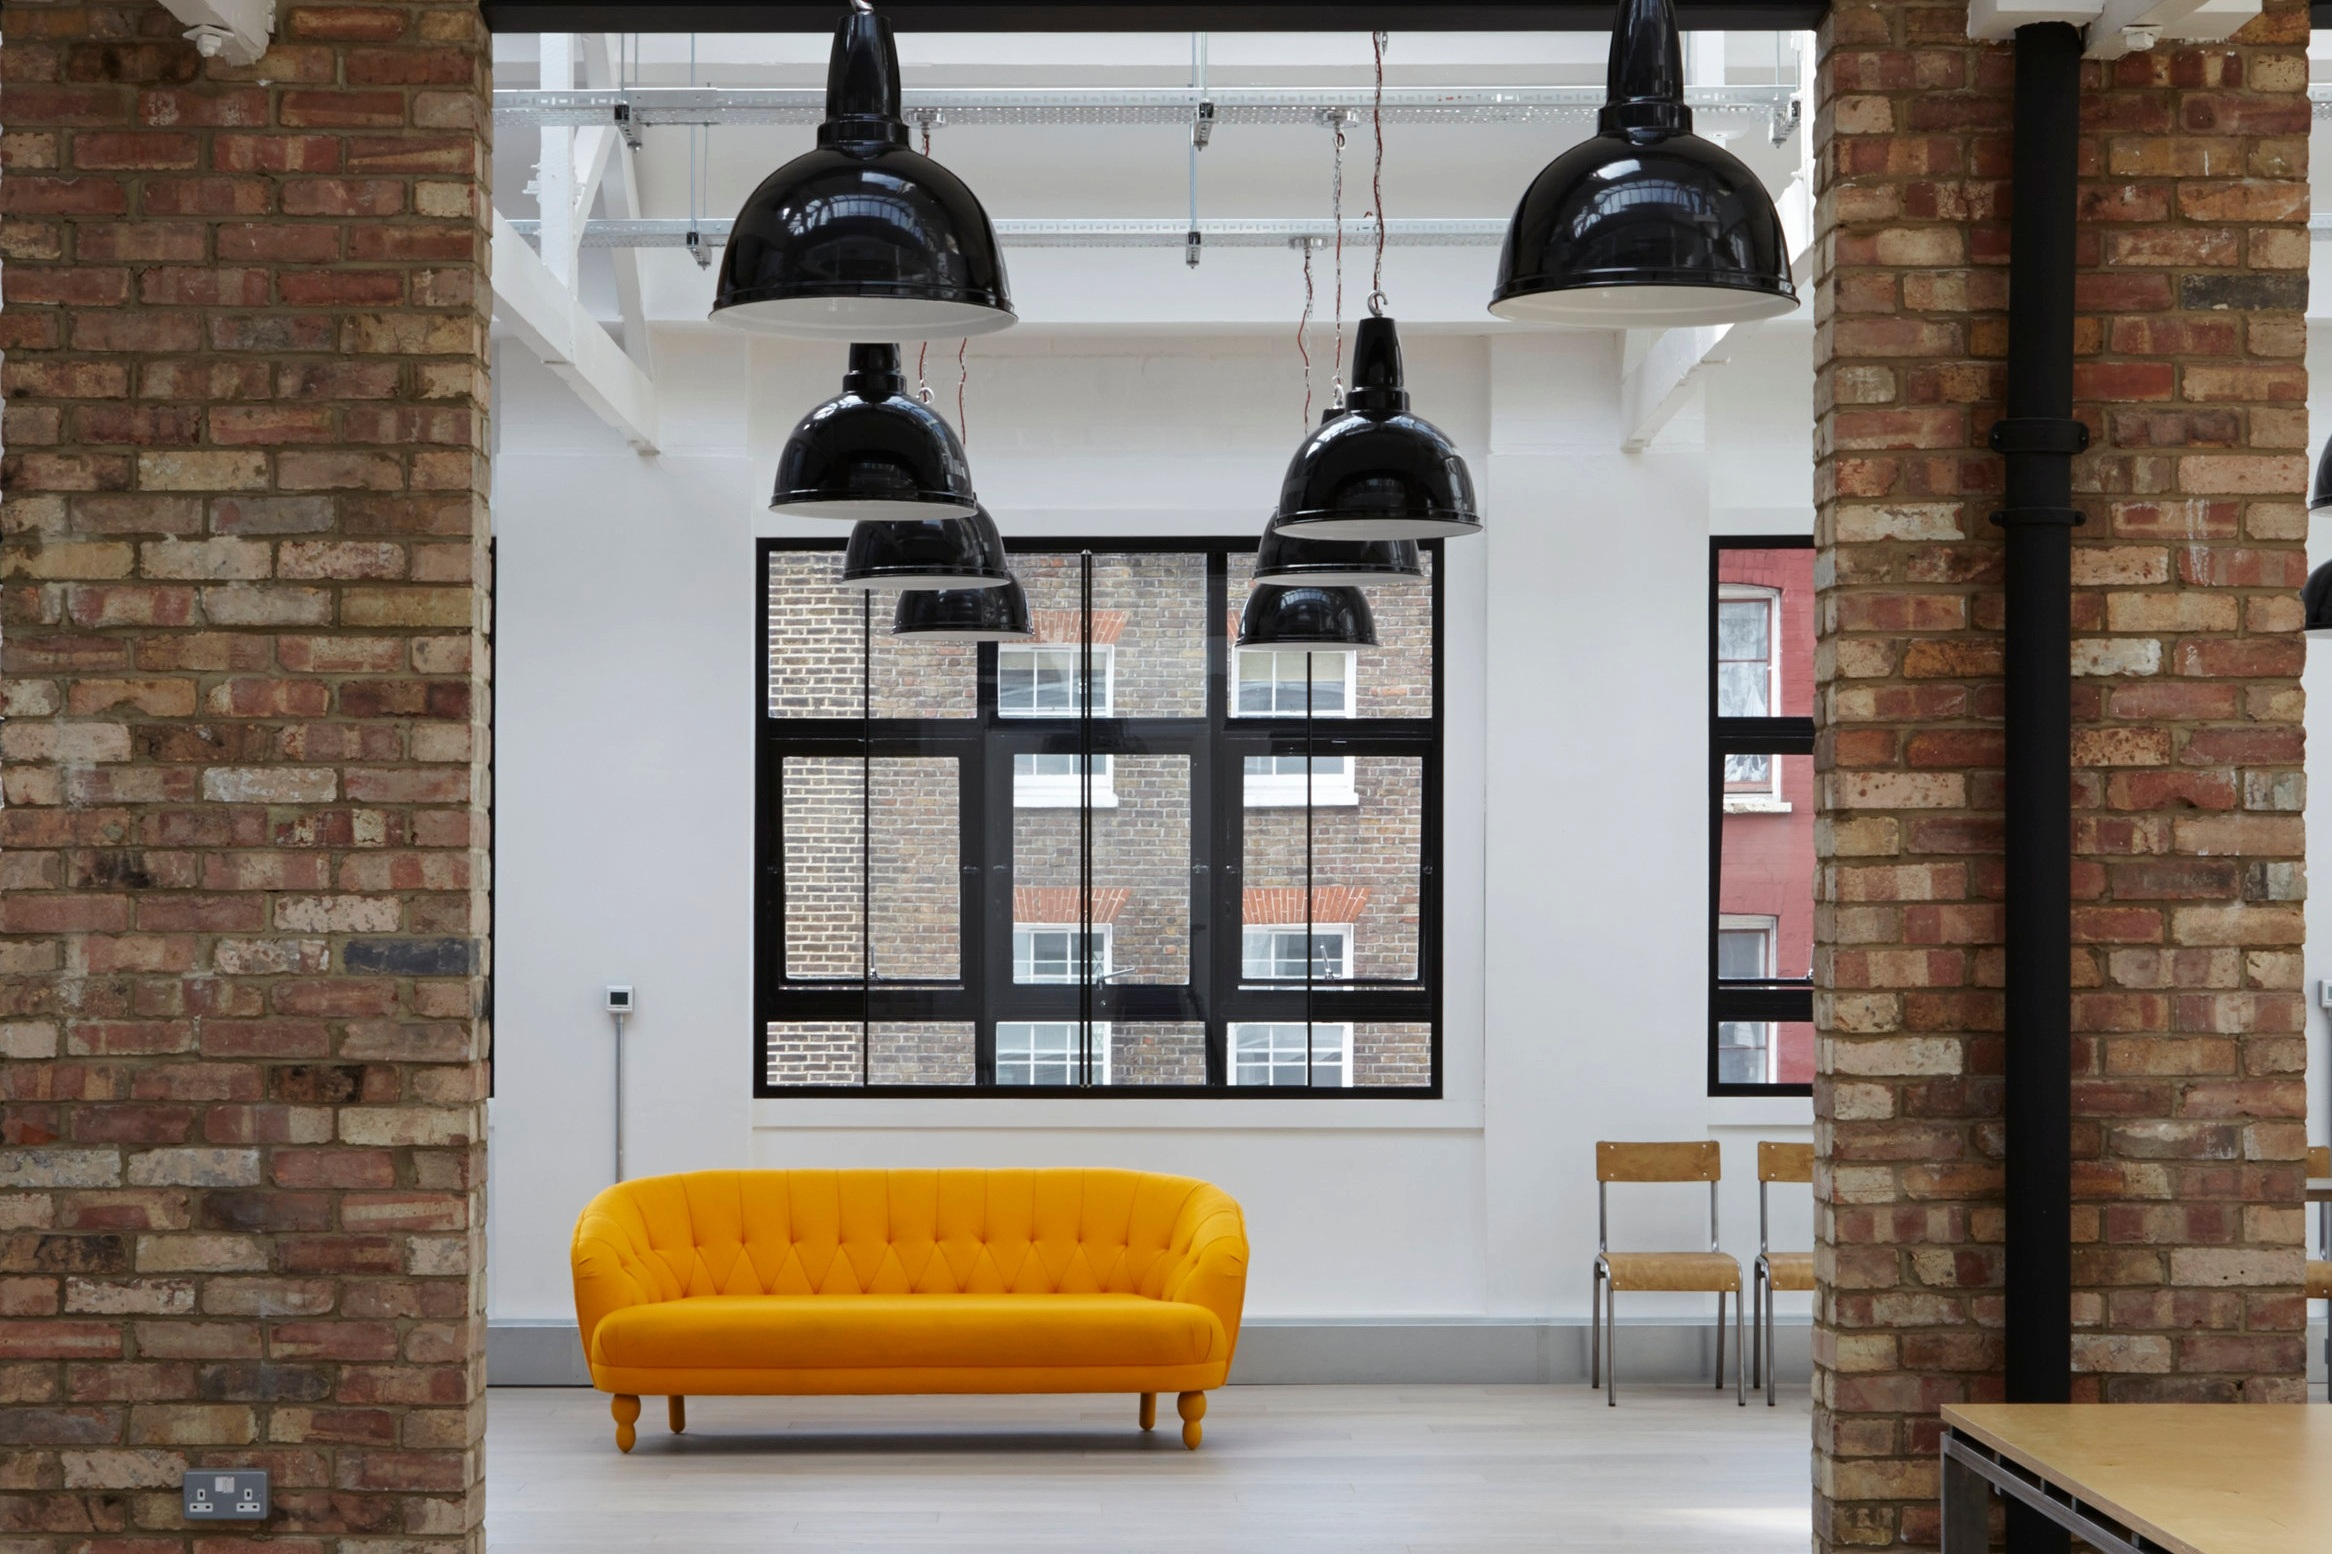 Asset Management - London real estate is dynamic and constantly changing. We ensure that our clients' investments evolve with the market, while exploring all avenues to add value.Lease negotiations, rent reviews and planning gains are just some of the ways we seek to maximise returns.